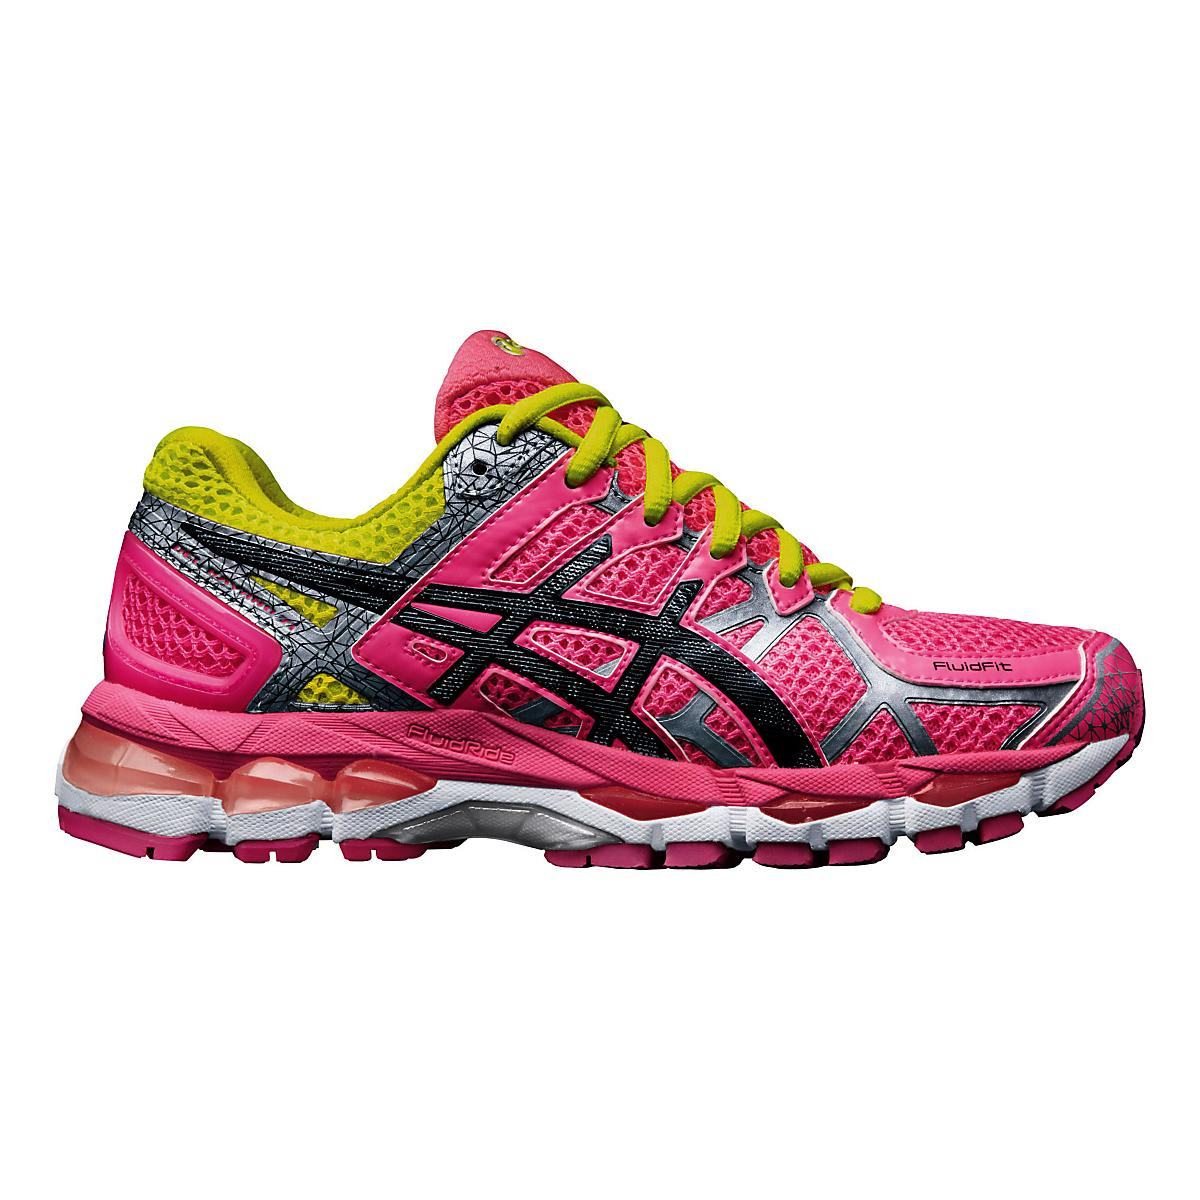 the best attitude 0dd53 370f4 Womens ASICS GEL-Kayano 21 Lite-Show Running Shoe at Road Runner Sports